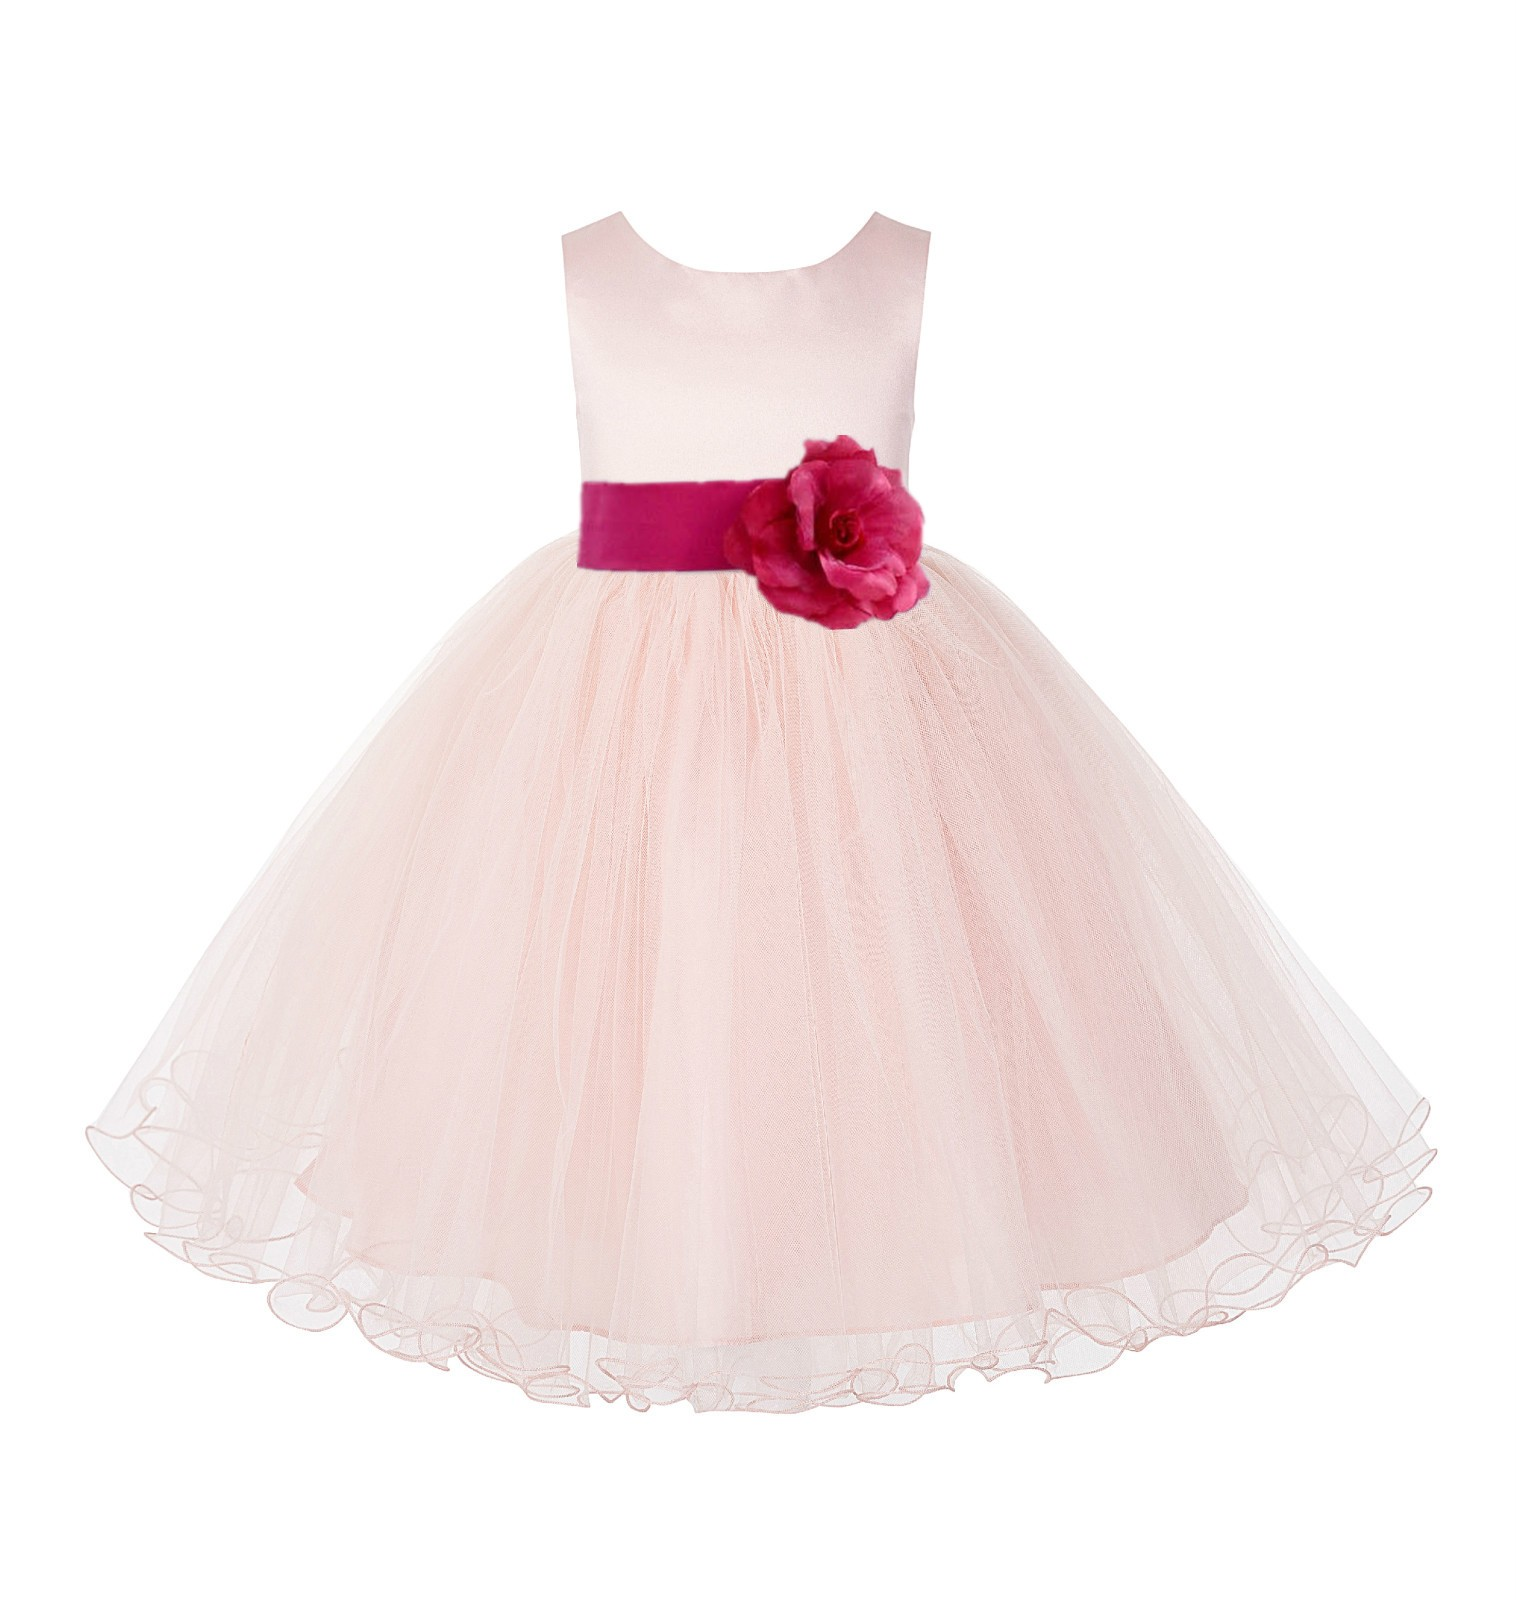 Blush Pink / Watermelon Tulle Rattail Edge Flower Girl Dress Pageant Recital 829S